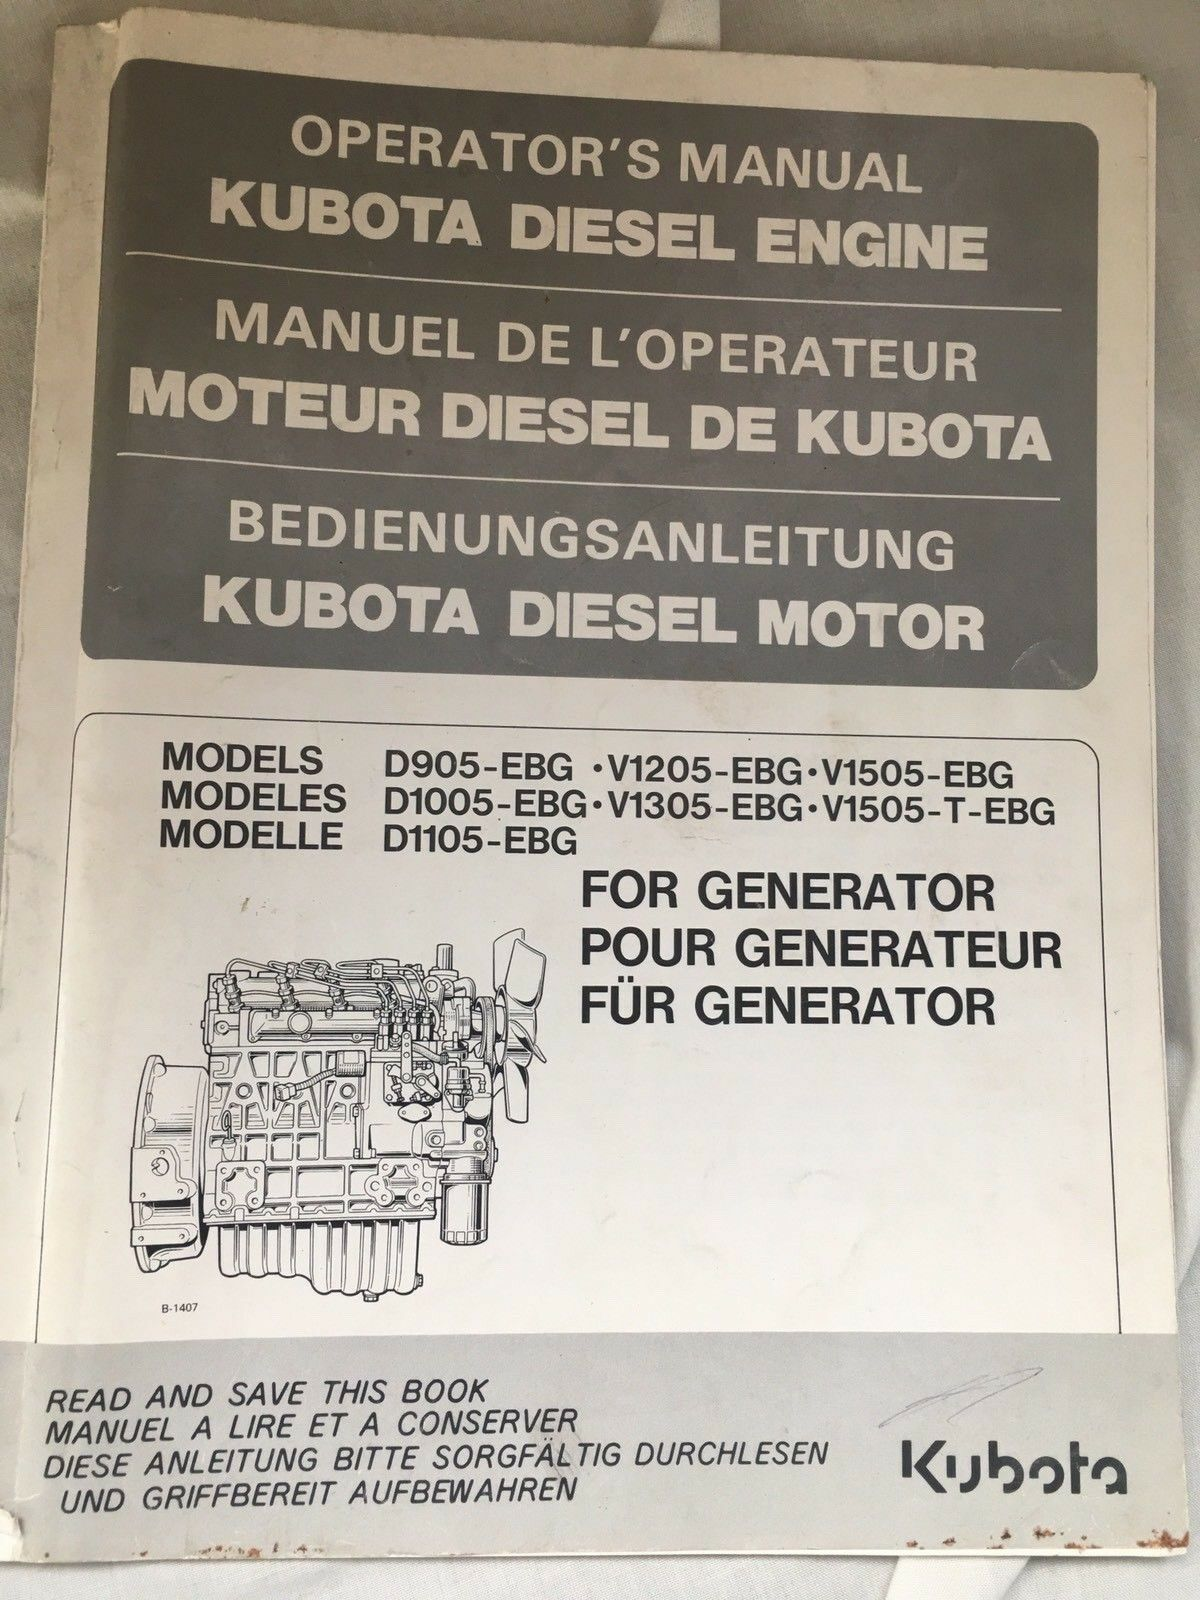 Kubota Diesel Engine Operators Manual D905 V1205 ...